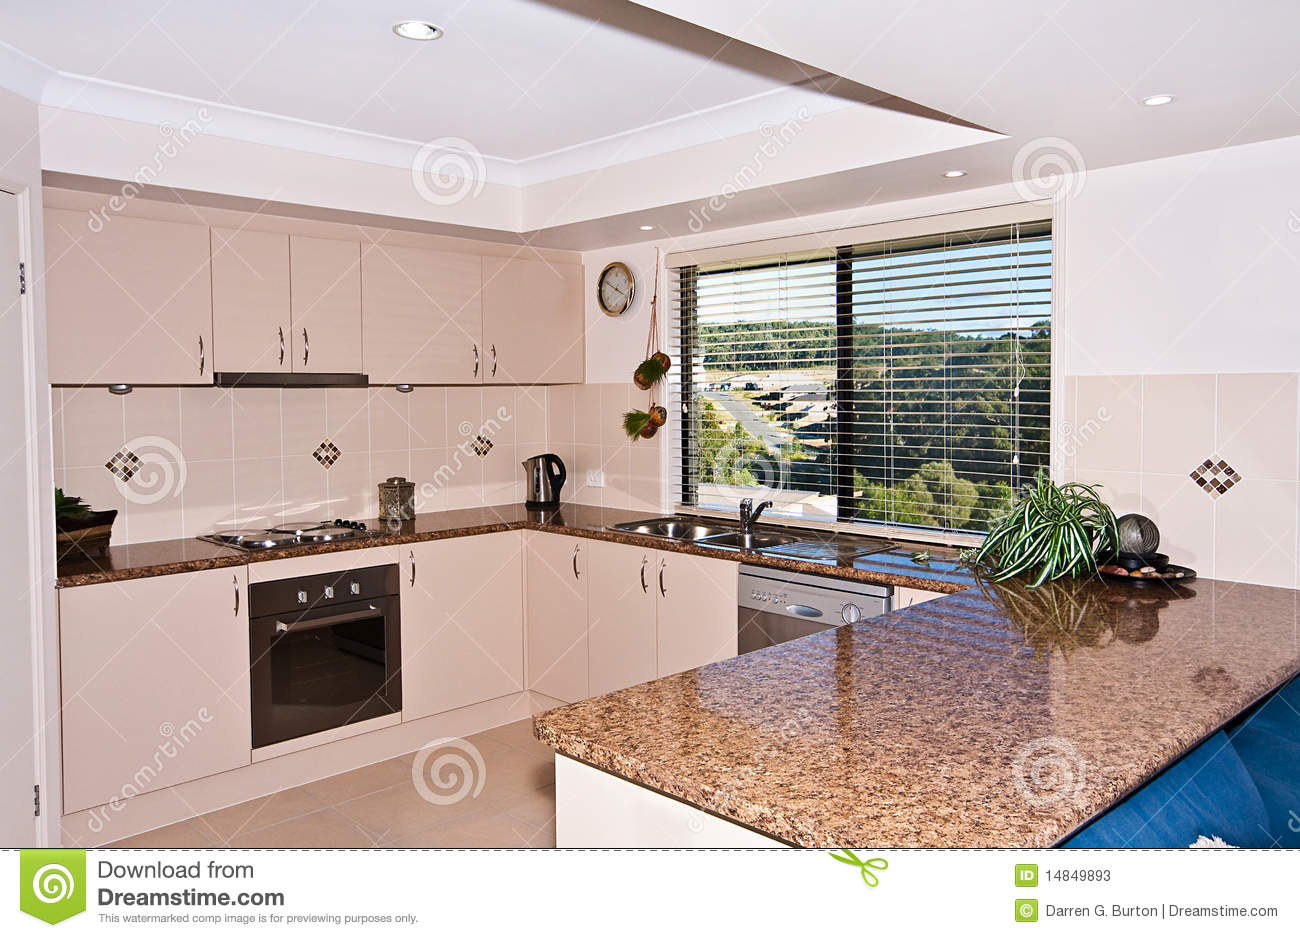 Very modern kitchen stock photos image 14849893 for Very modern kitchens